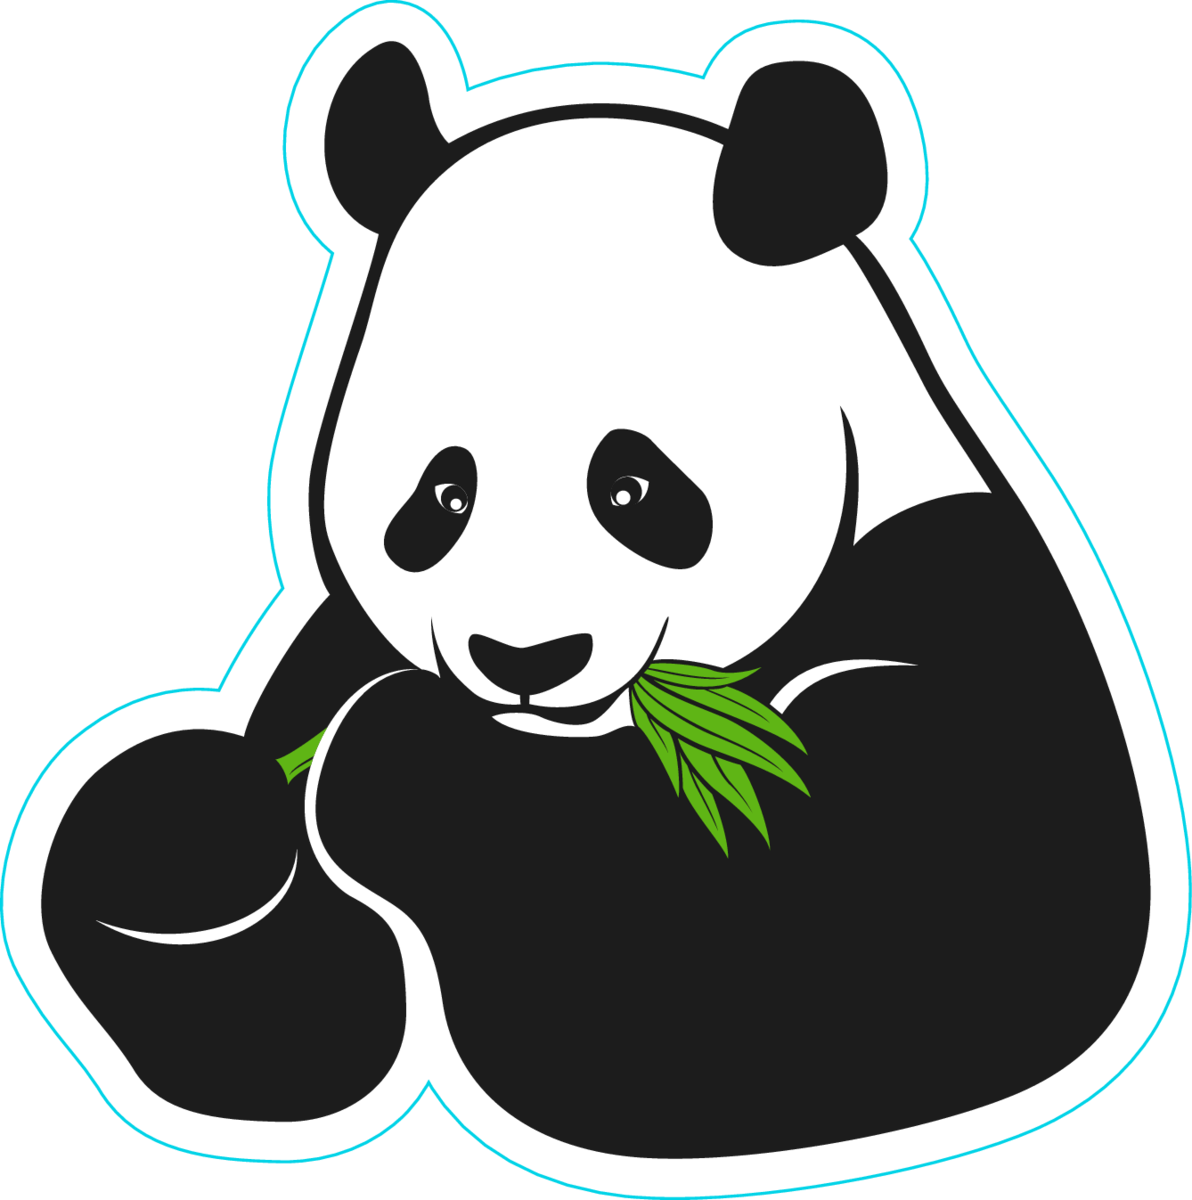 Eating panda sticker